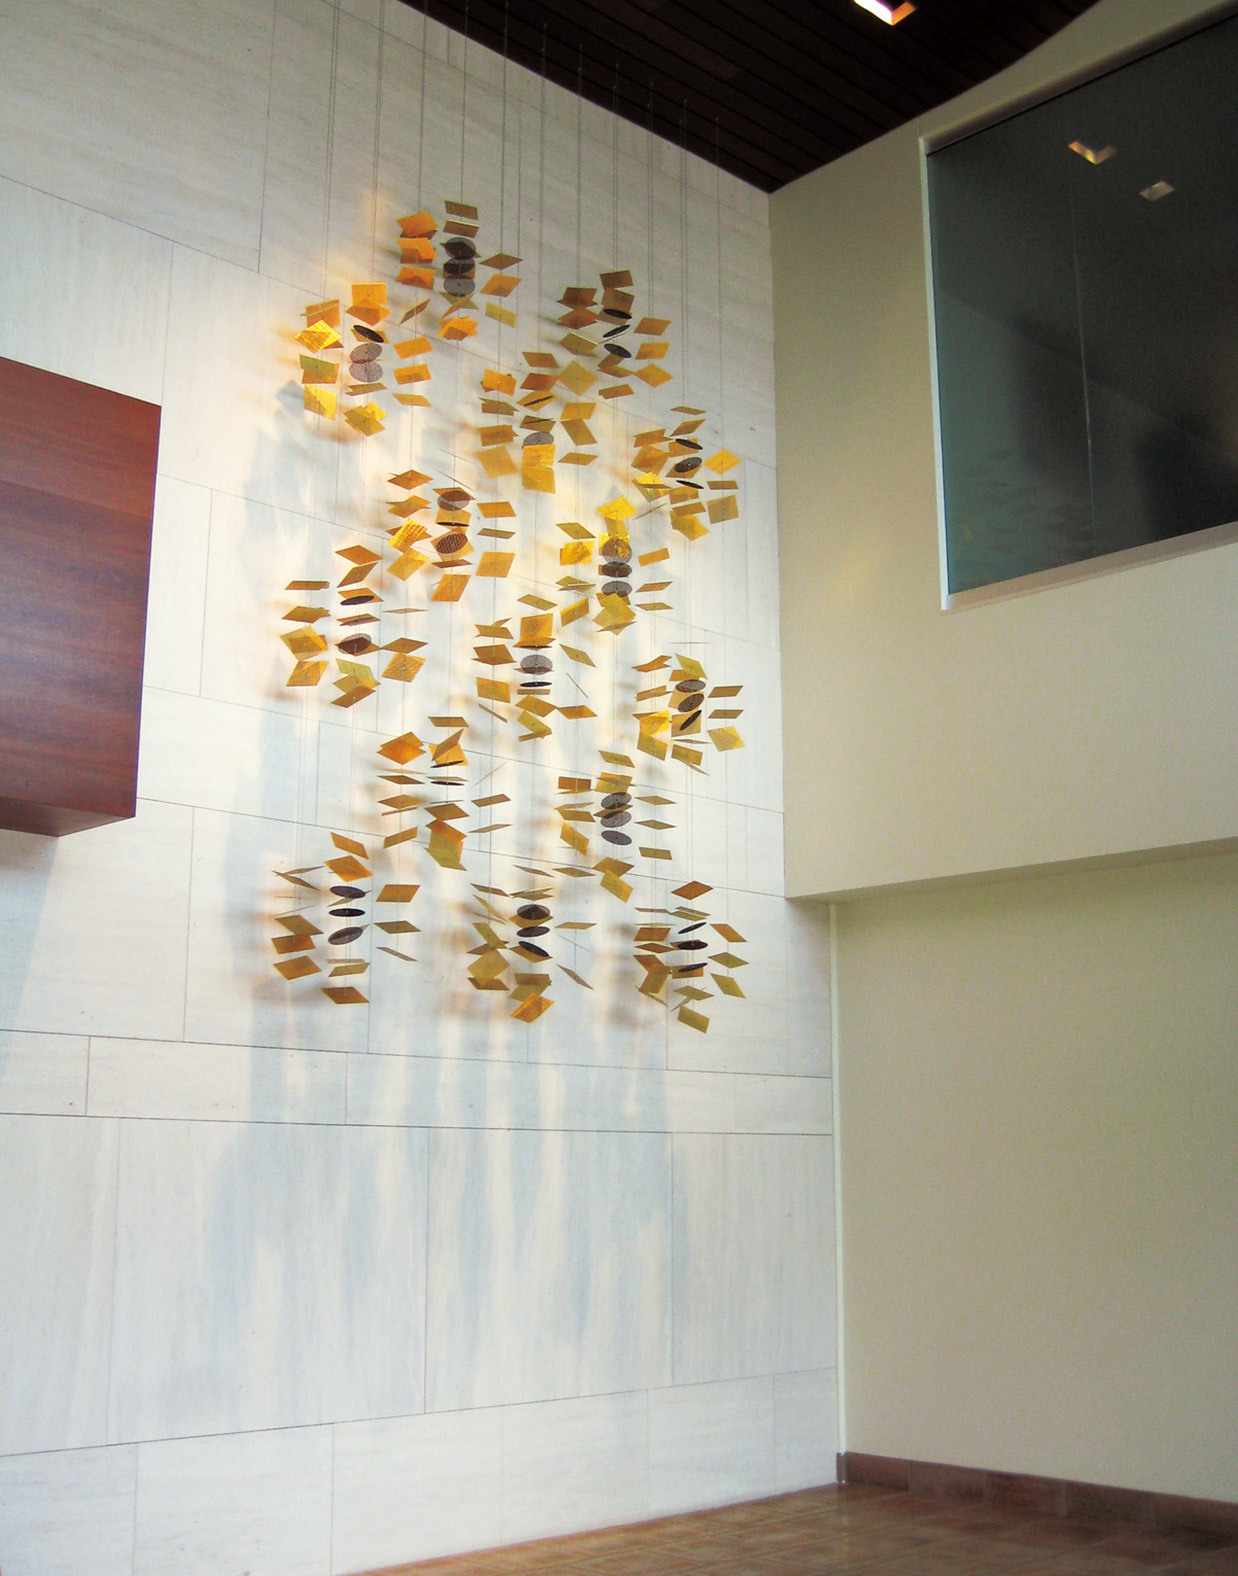 Alhambra Archetype gold corporate art wall sculpture by Talley Fisher.